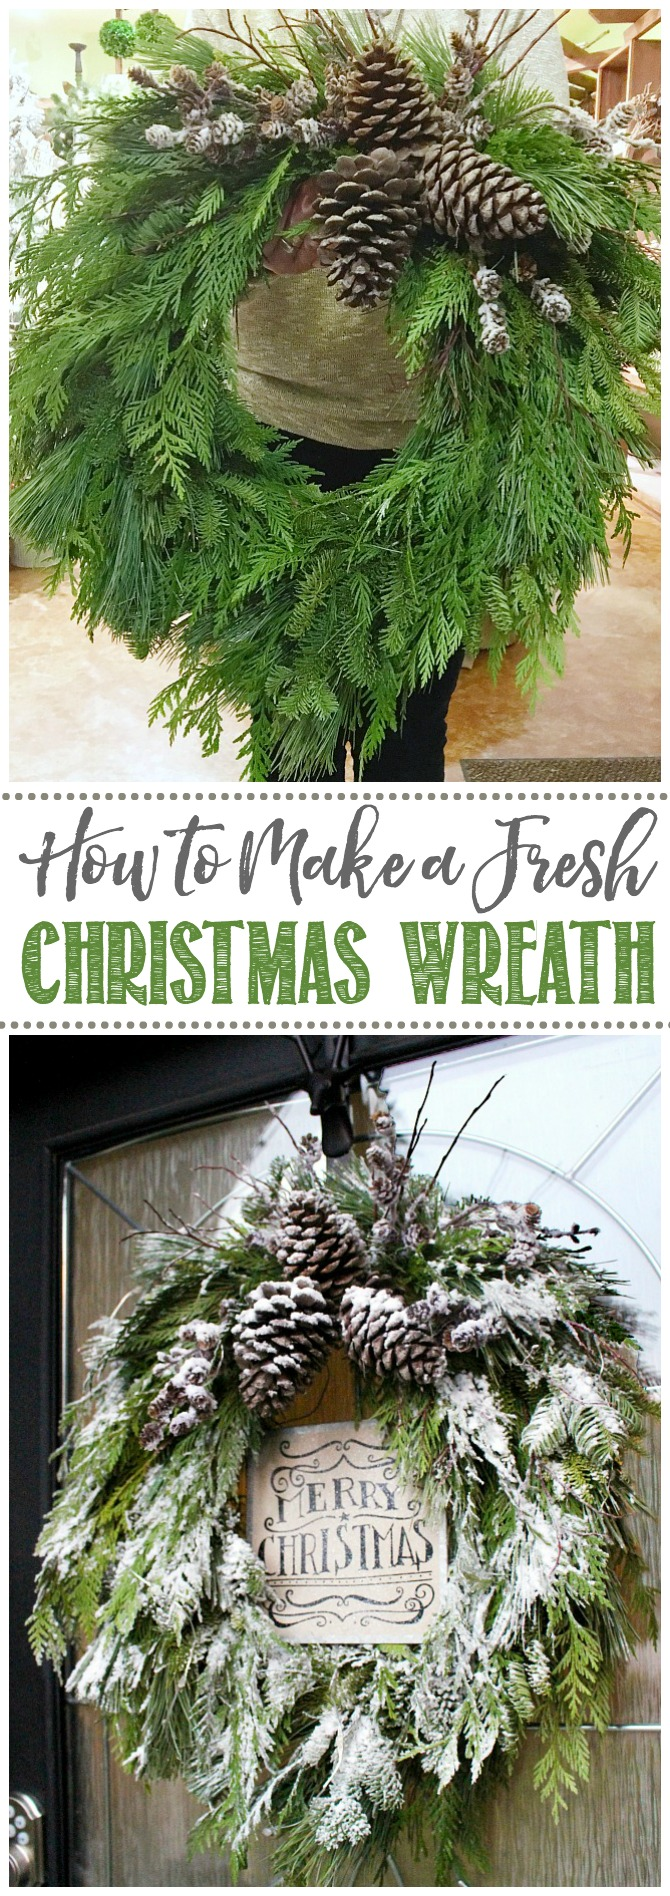 Beautiful Christmas wreath using real, fresh greenery. Beautiful on it's own or flocked for a snowy look.